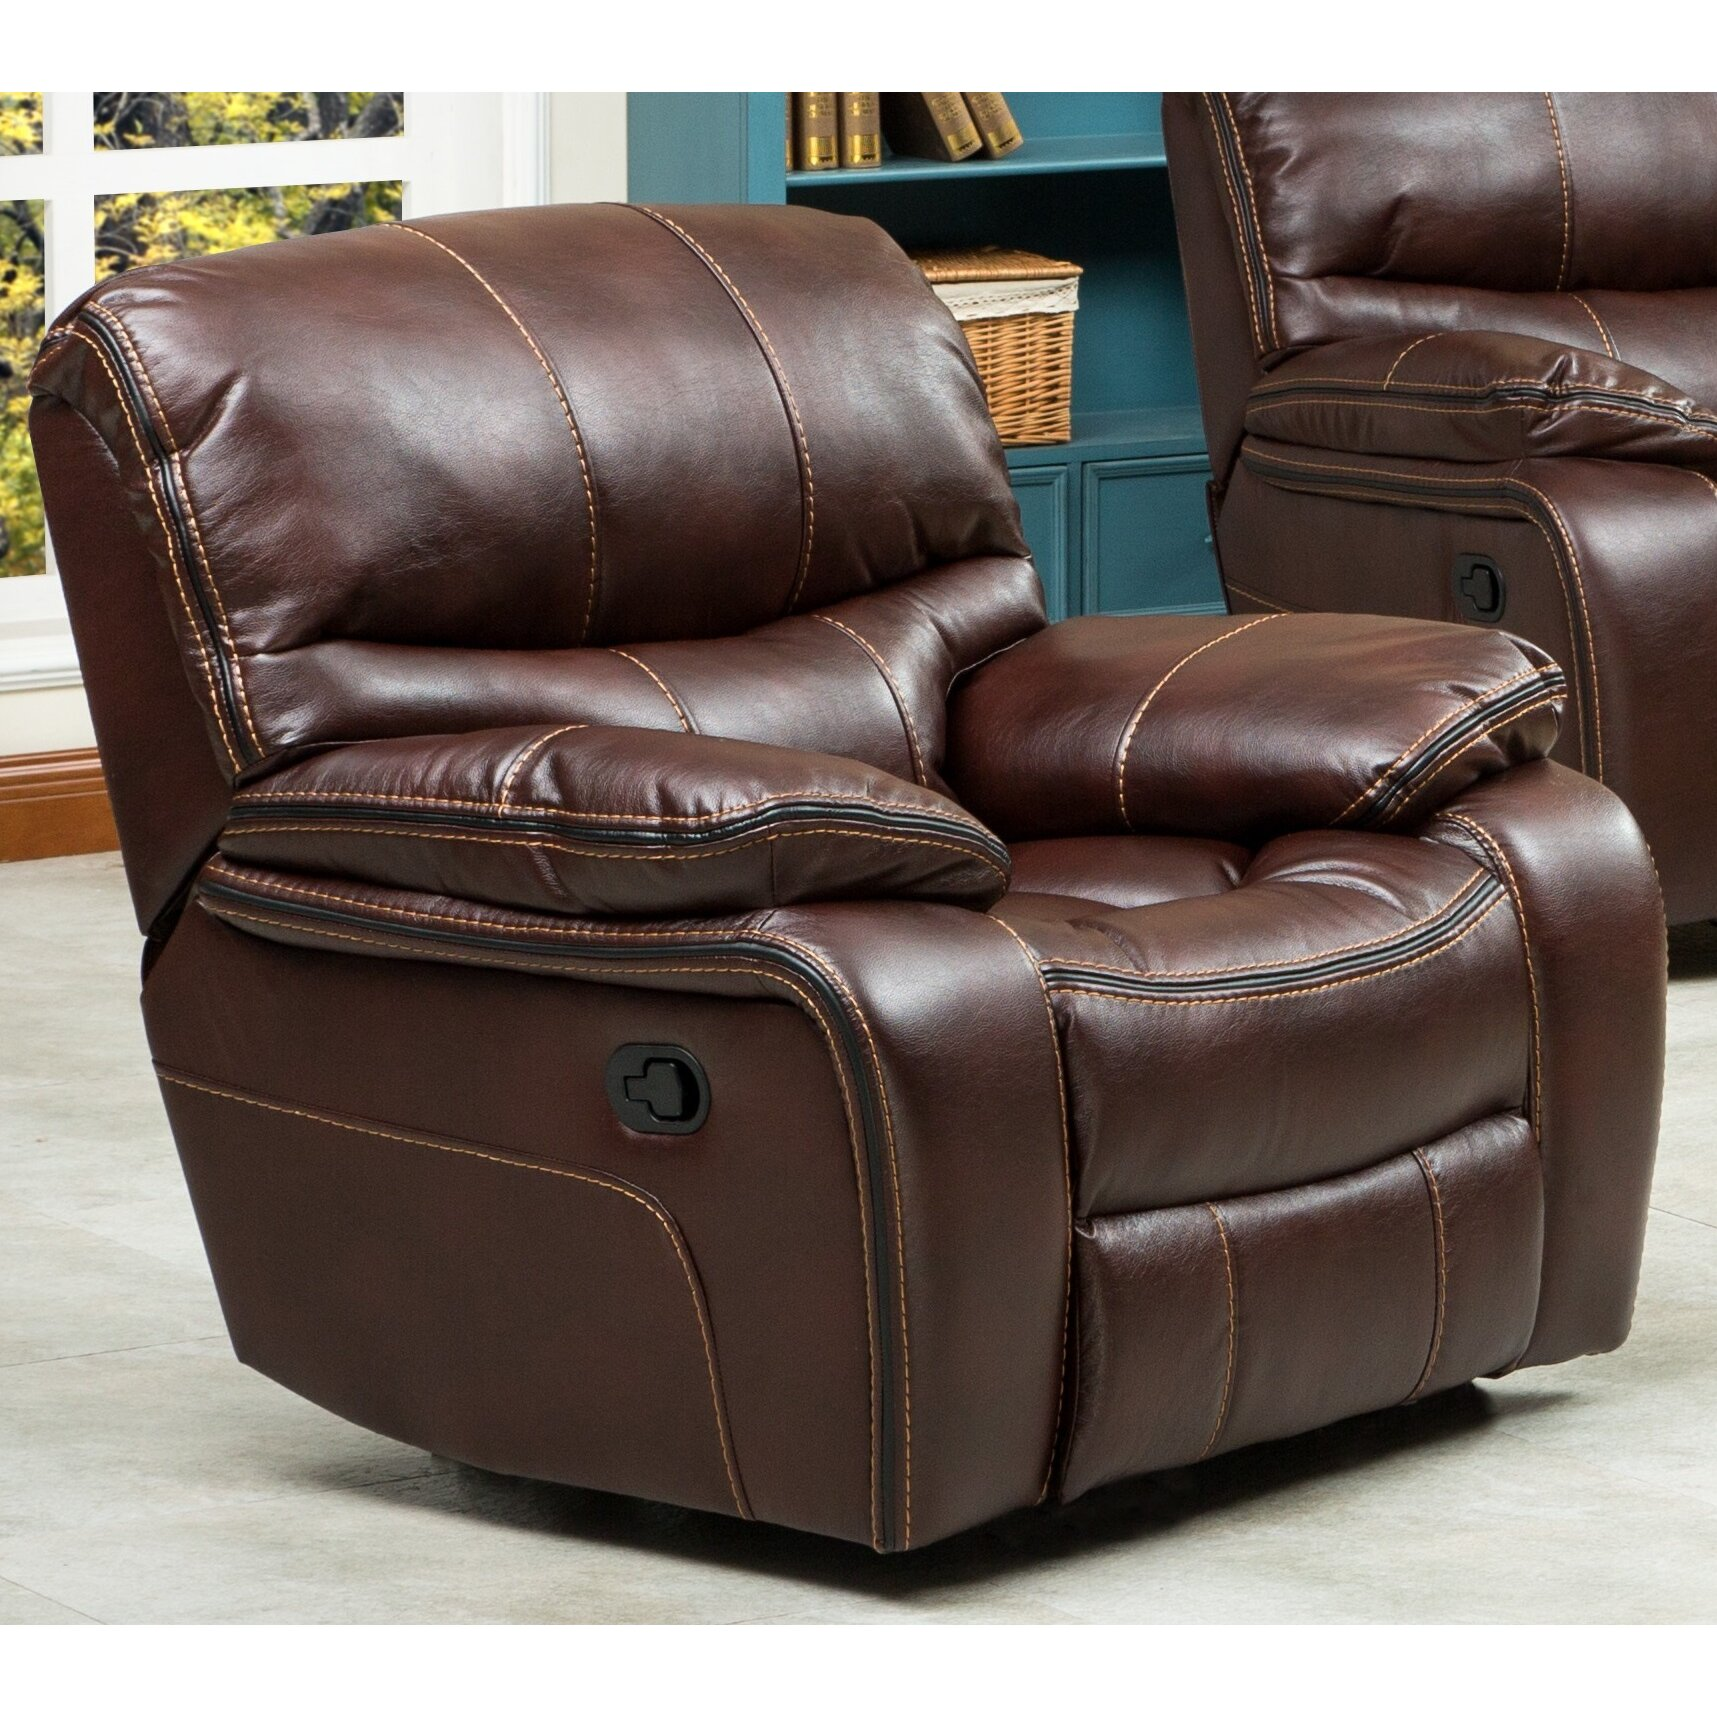 Roundhill furniture ewa 3 piece reclining leather living room set wayfair Leather sofa and loveseat recliner